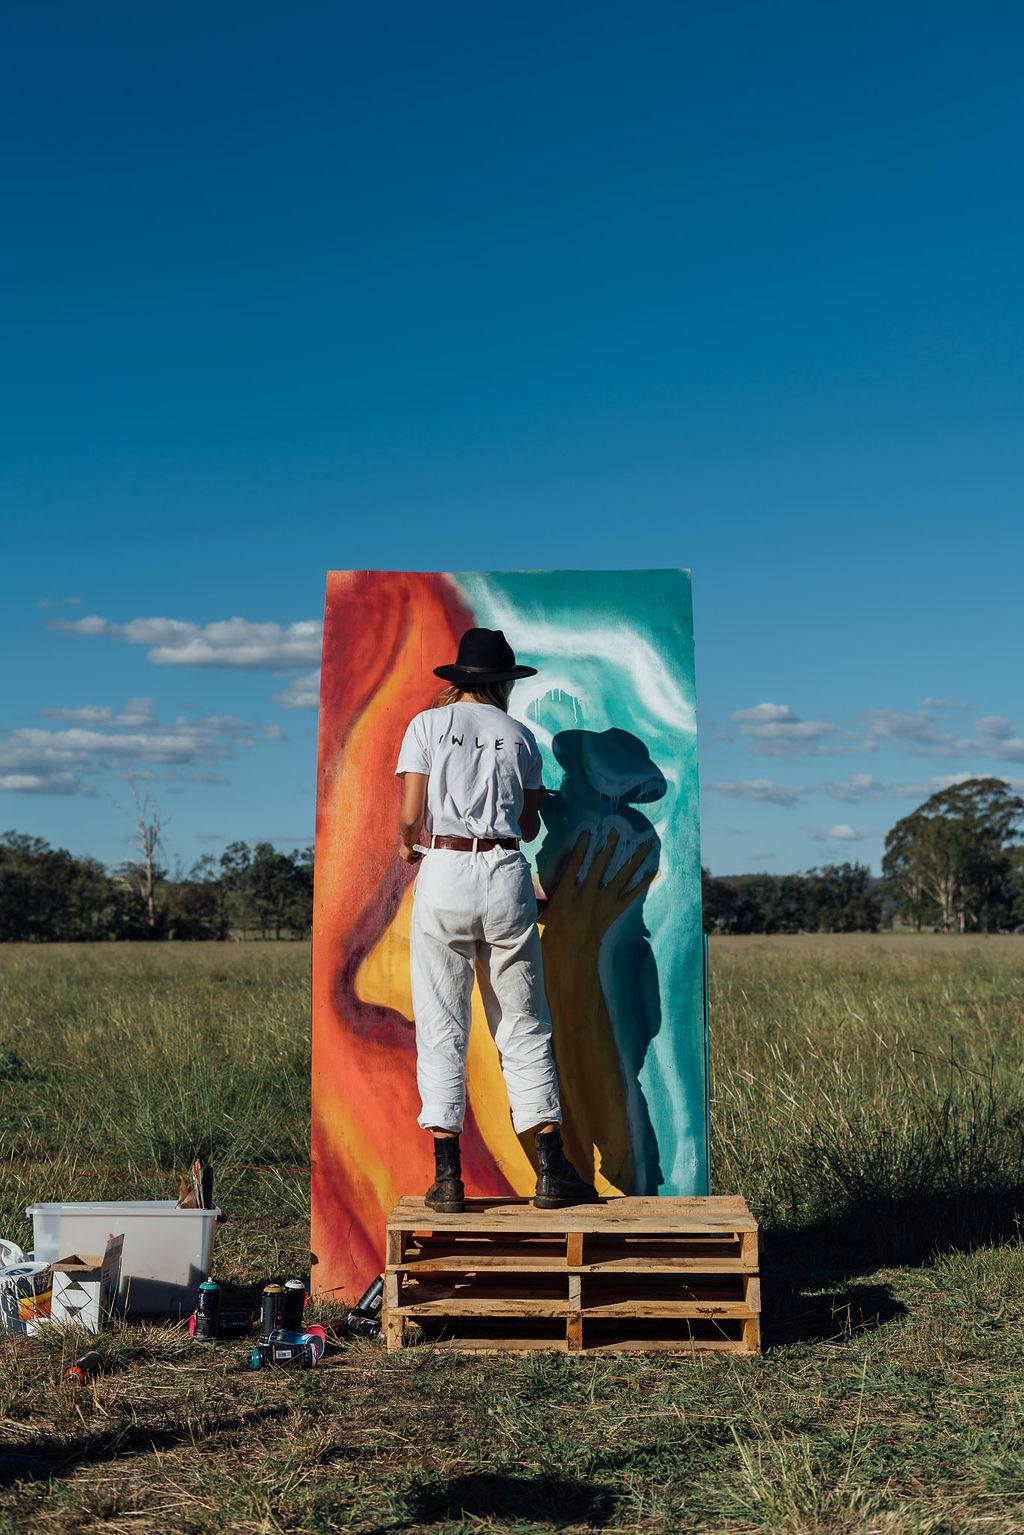 The Art - Some of Queensland's best visual artists were on hand to turn the already beautiful site into a gorgeous outdoor gallery.